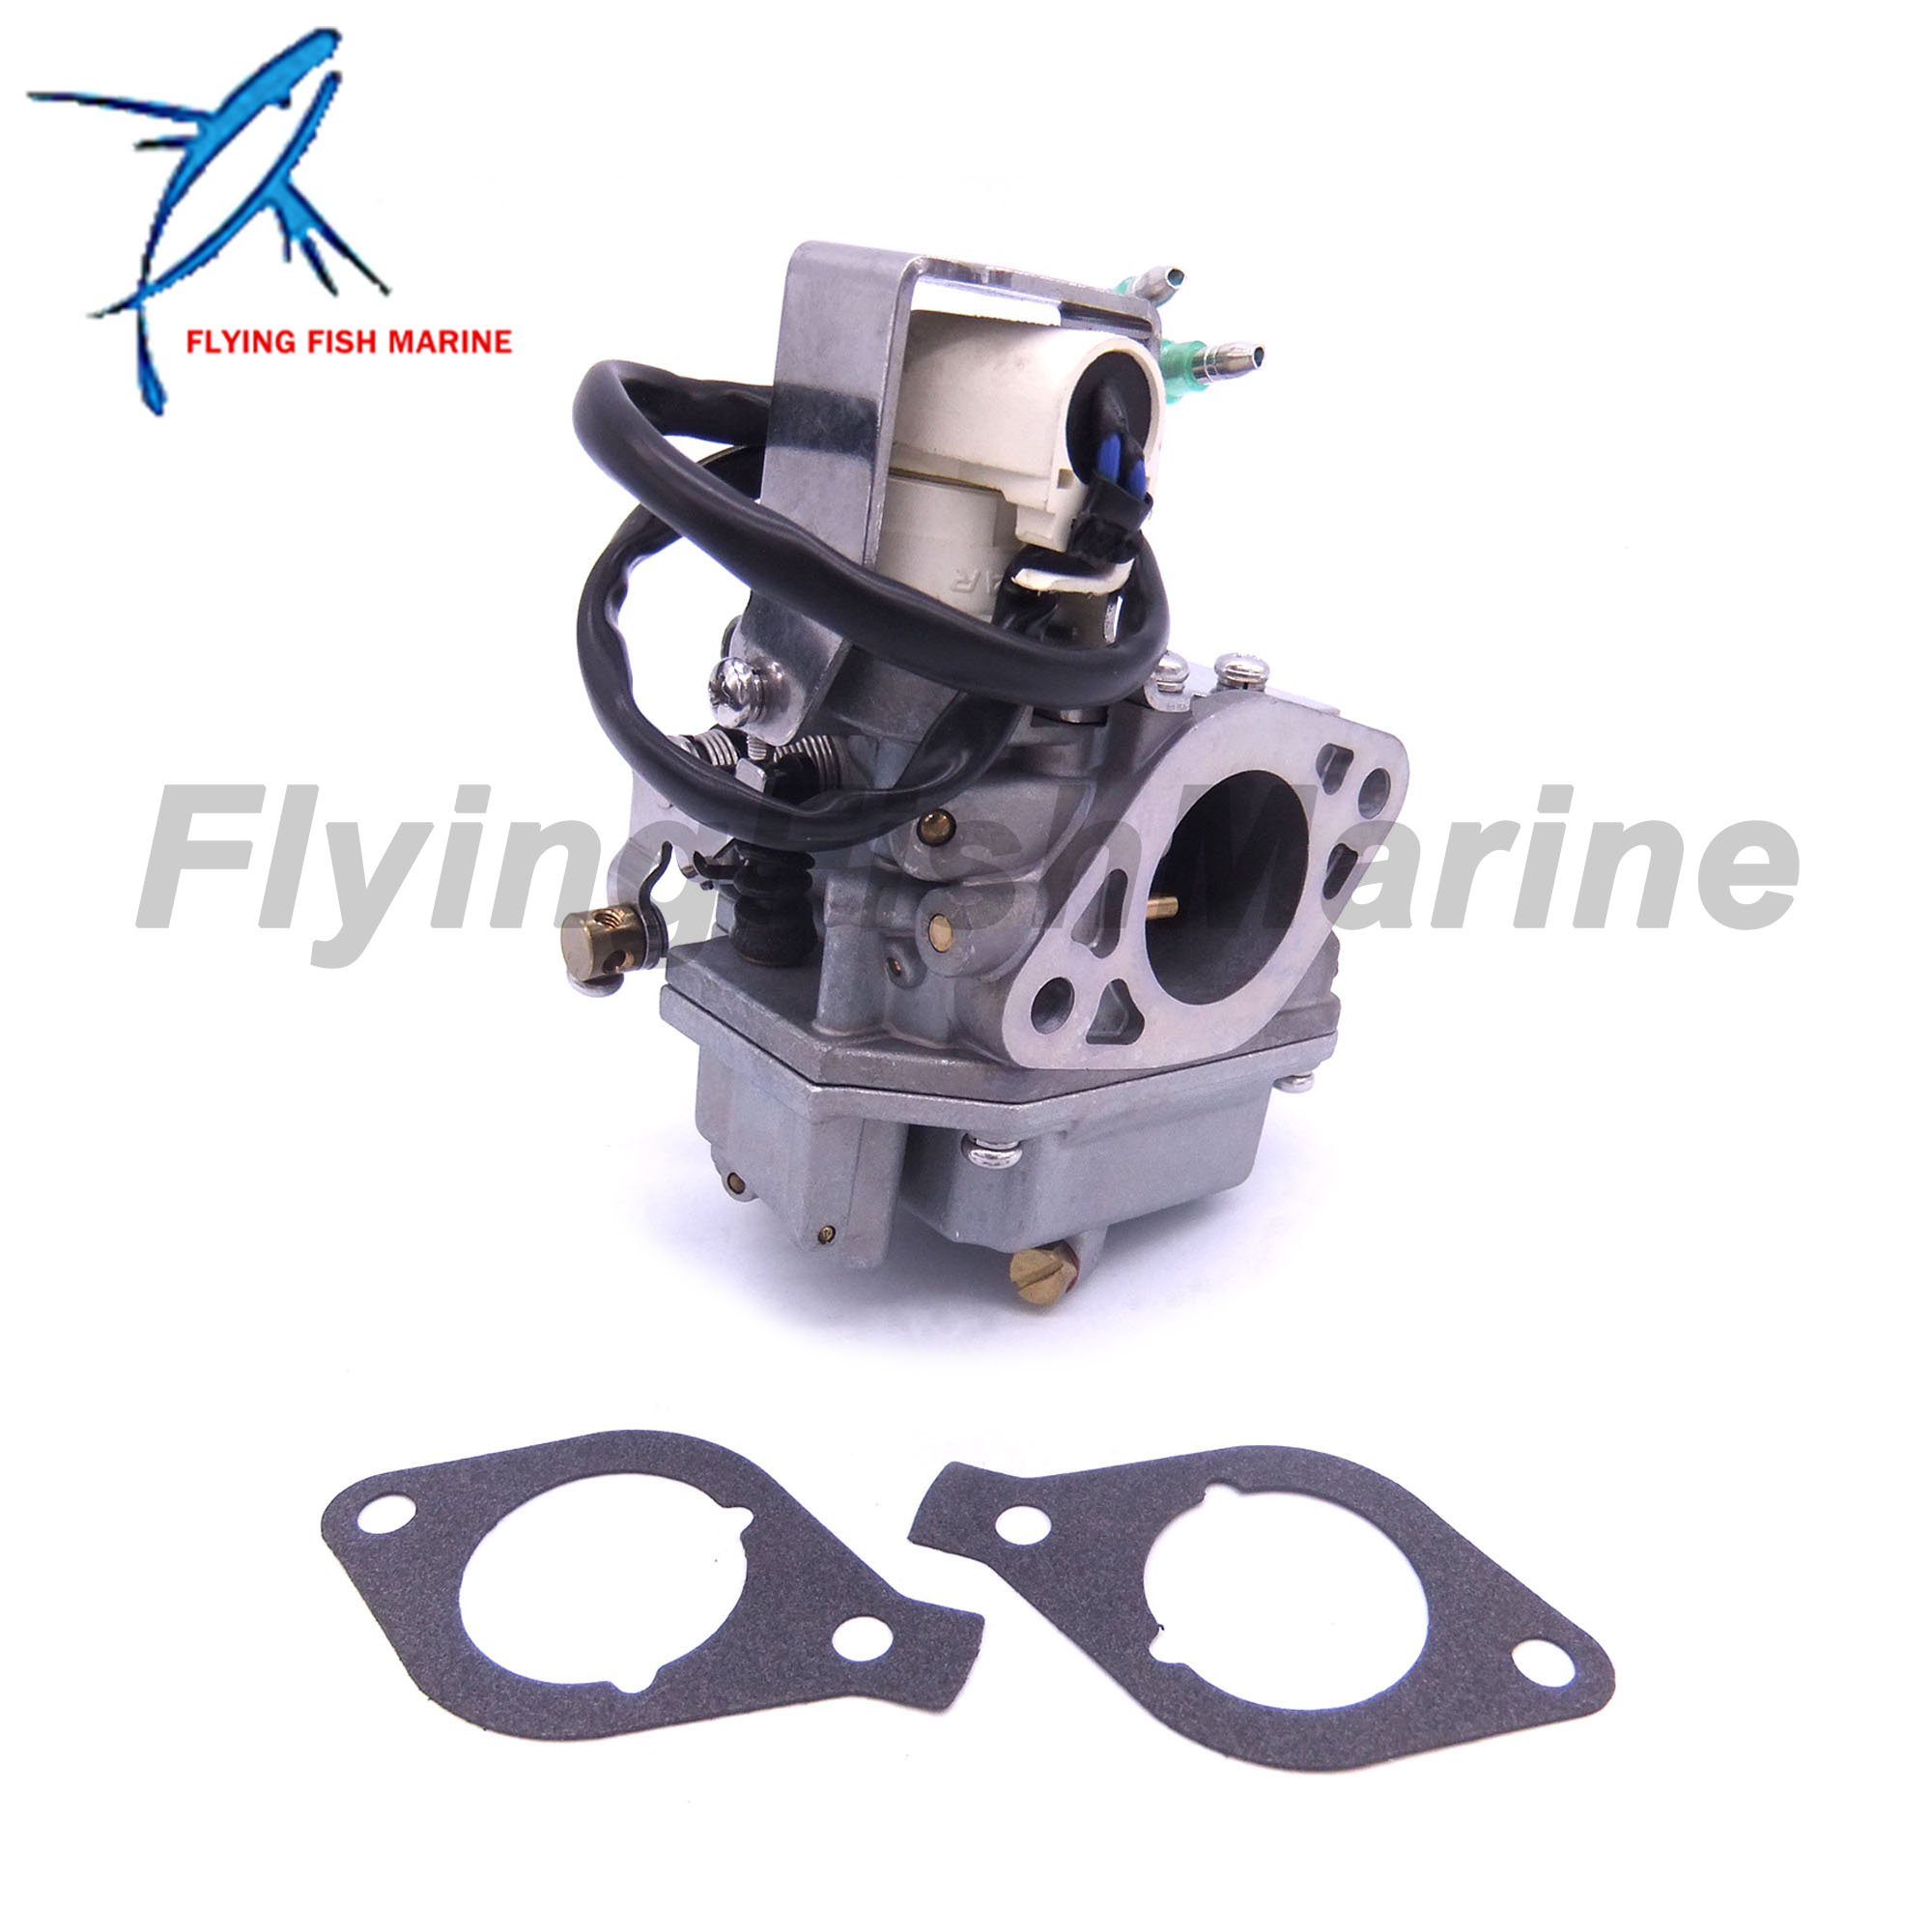 Outboard Motor 6AH-14301-00 6AH-14301-01 Carburetor Assy and 6AH-13646-00 Gaskets (2 pcs) for Yamaha 4-stroke F20 Boat Engine